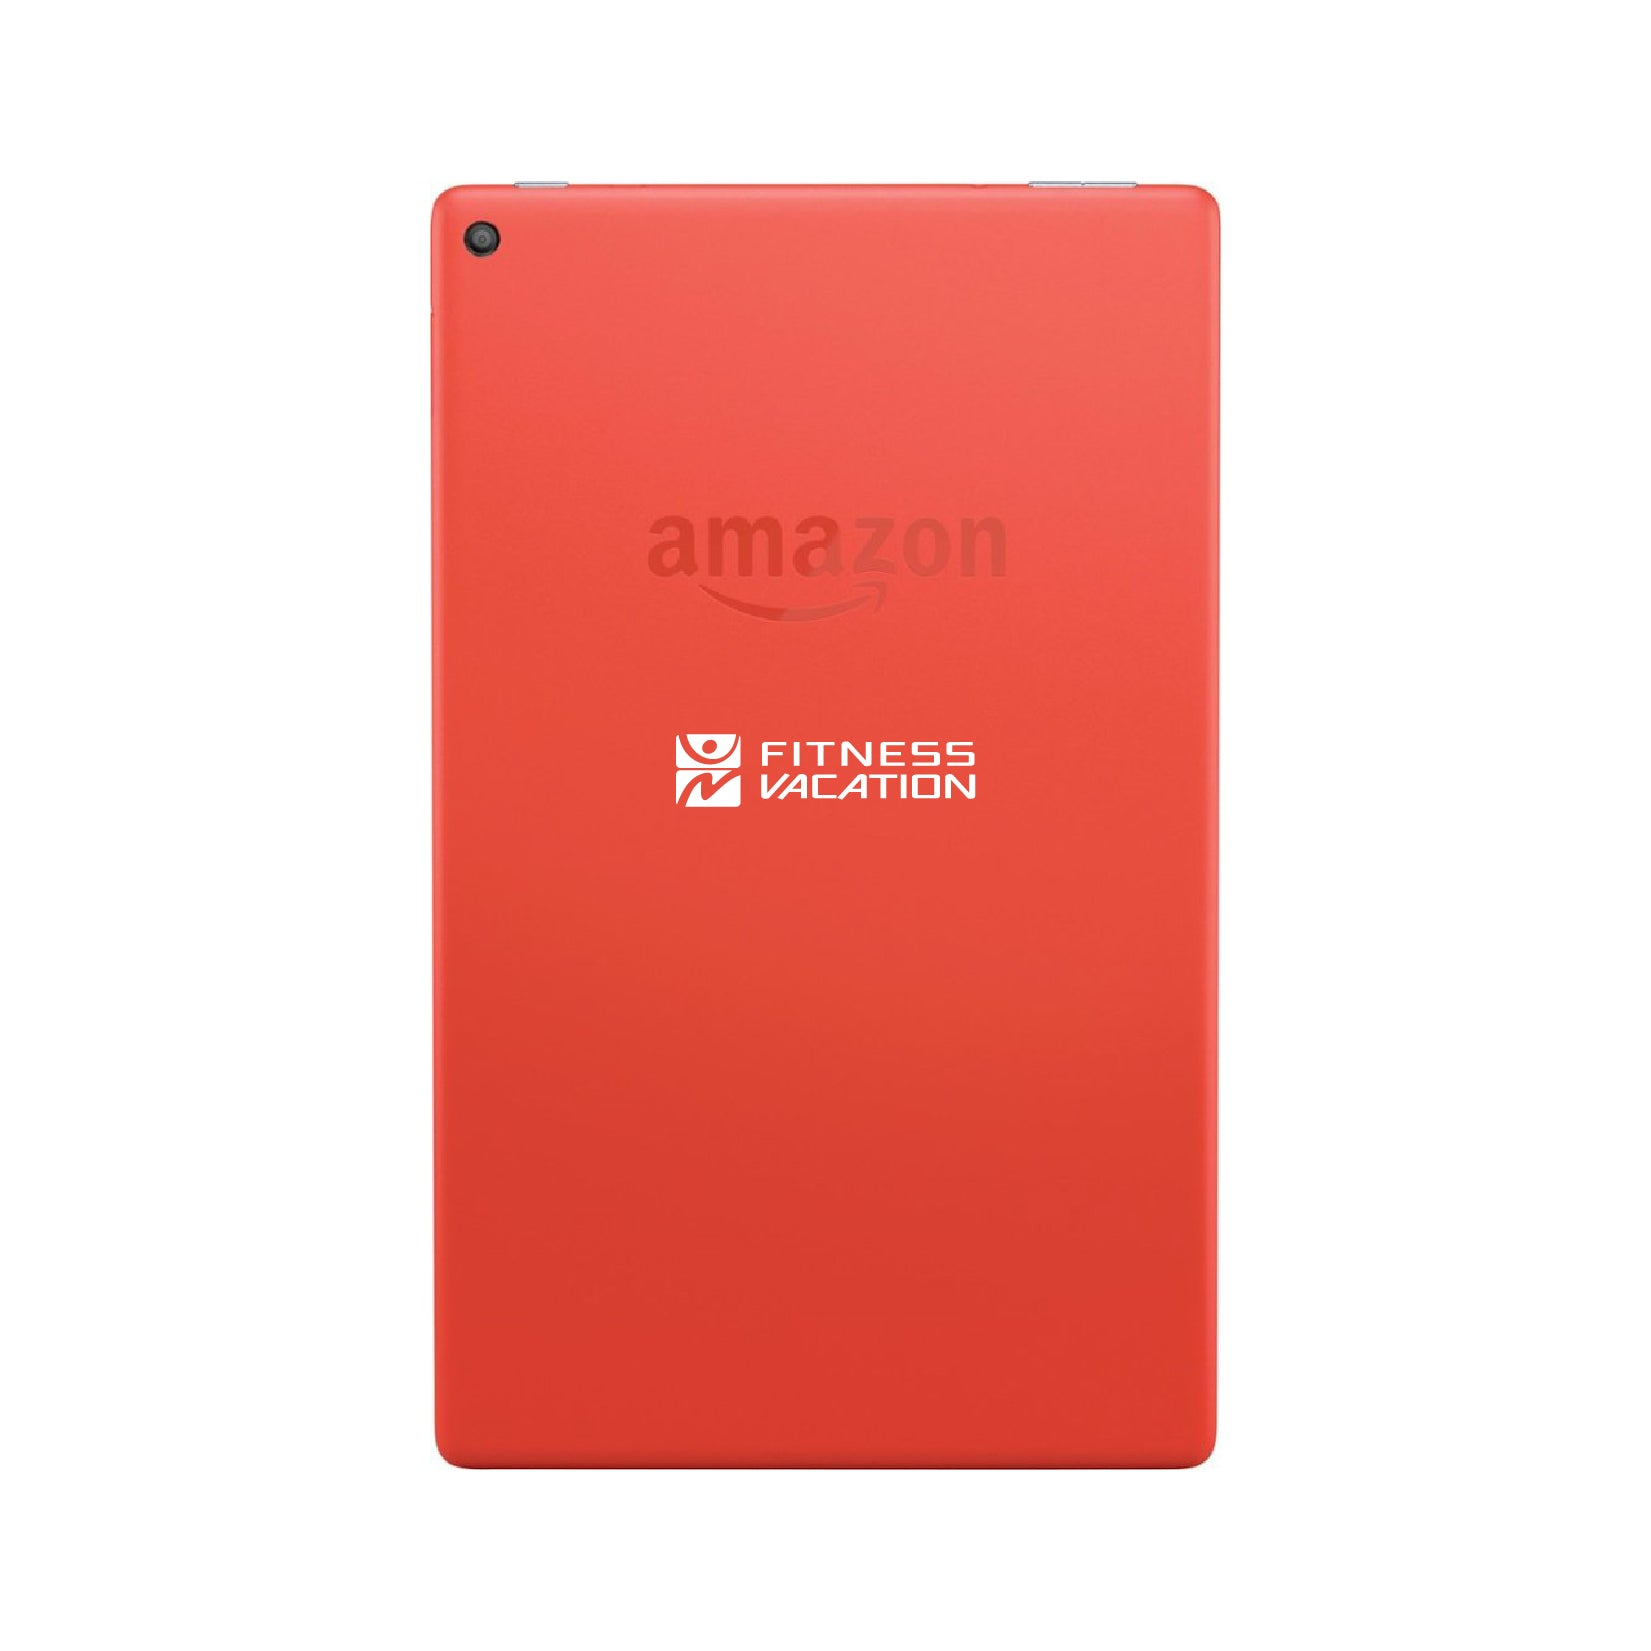 Amazon 10.1 - Inch Fire HD 10 Tablet 32 GB with Alexa - (Punch Red)